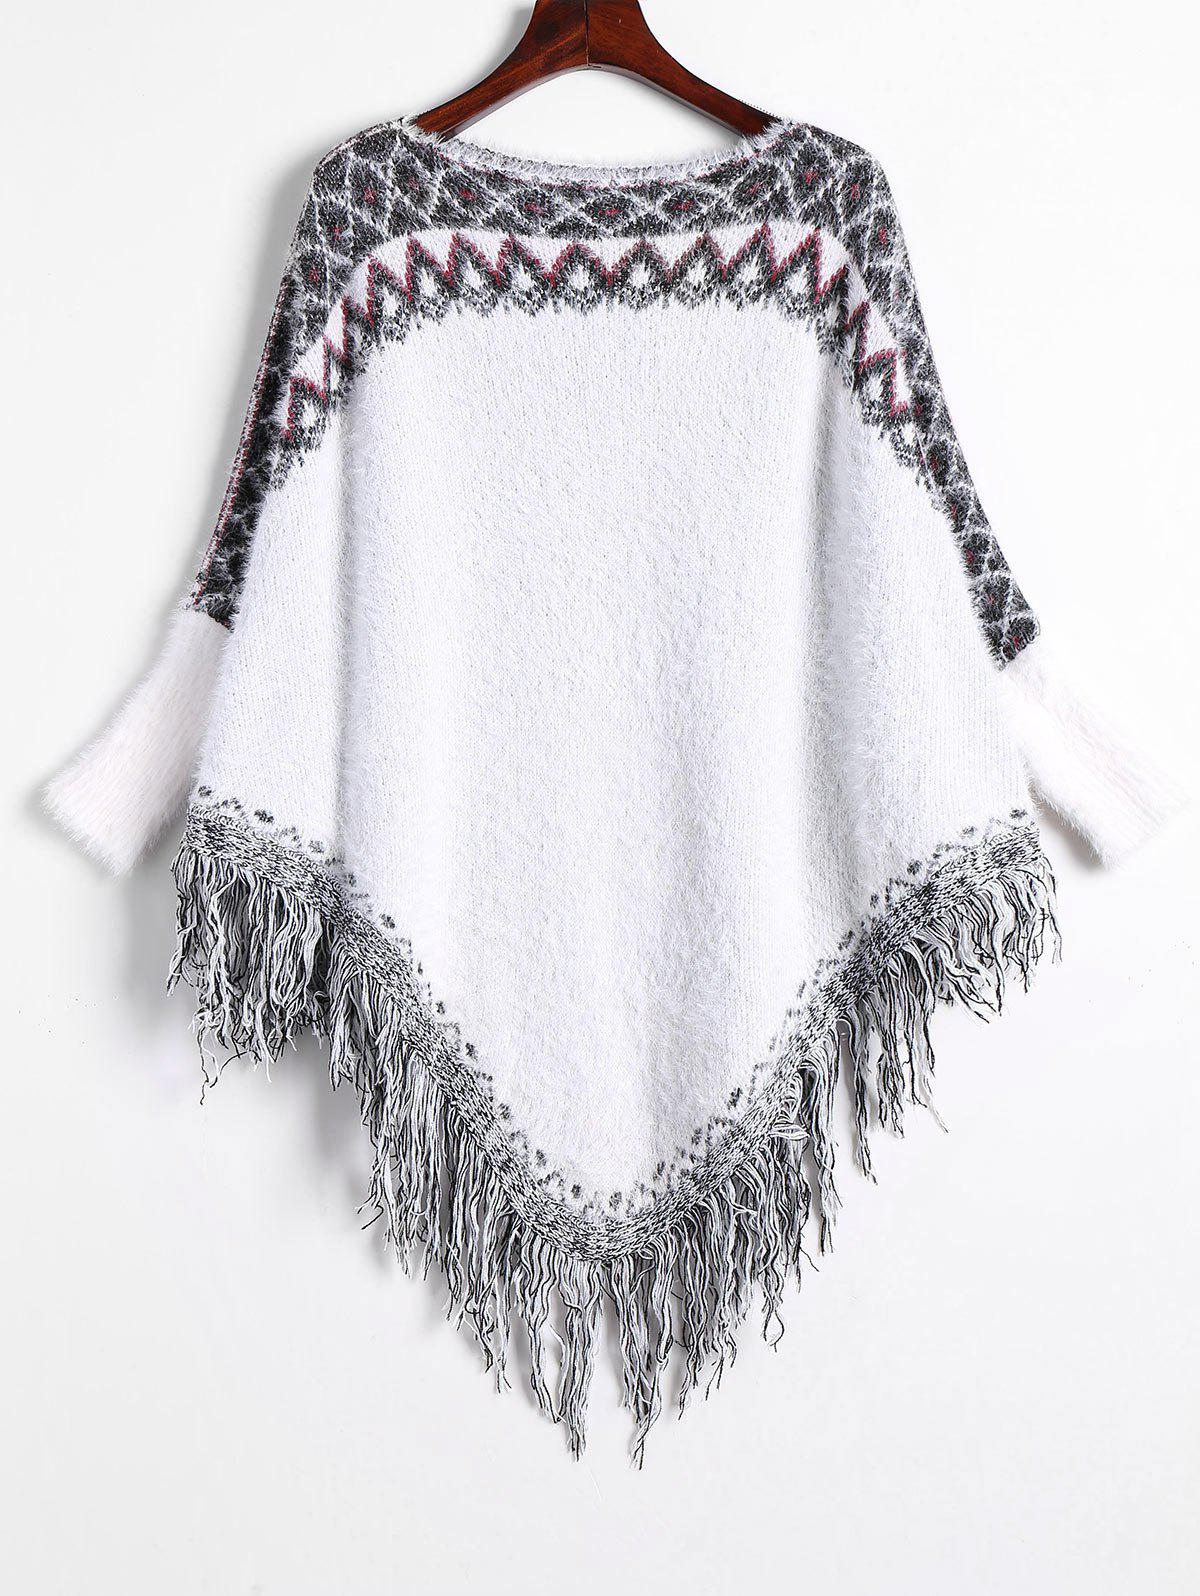 Fringed Batwing Asymmetric Fuzzy SweaterWOMEN<br><br>Size: ONE SIZE; Color: WHITE; Type: Pullovers; Material: Polyester,Viscose; Sleeve Length: Full; Collar: Boat Neck; Style: Fashion; Pattern Type: Print; Season: Winter; Weight: 0.5500kg; Package Contents: 1 x Sweater;